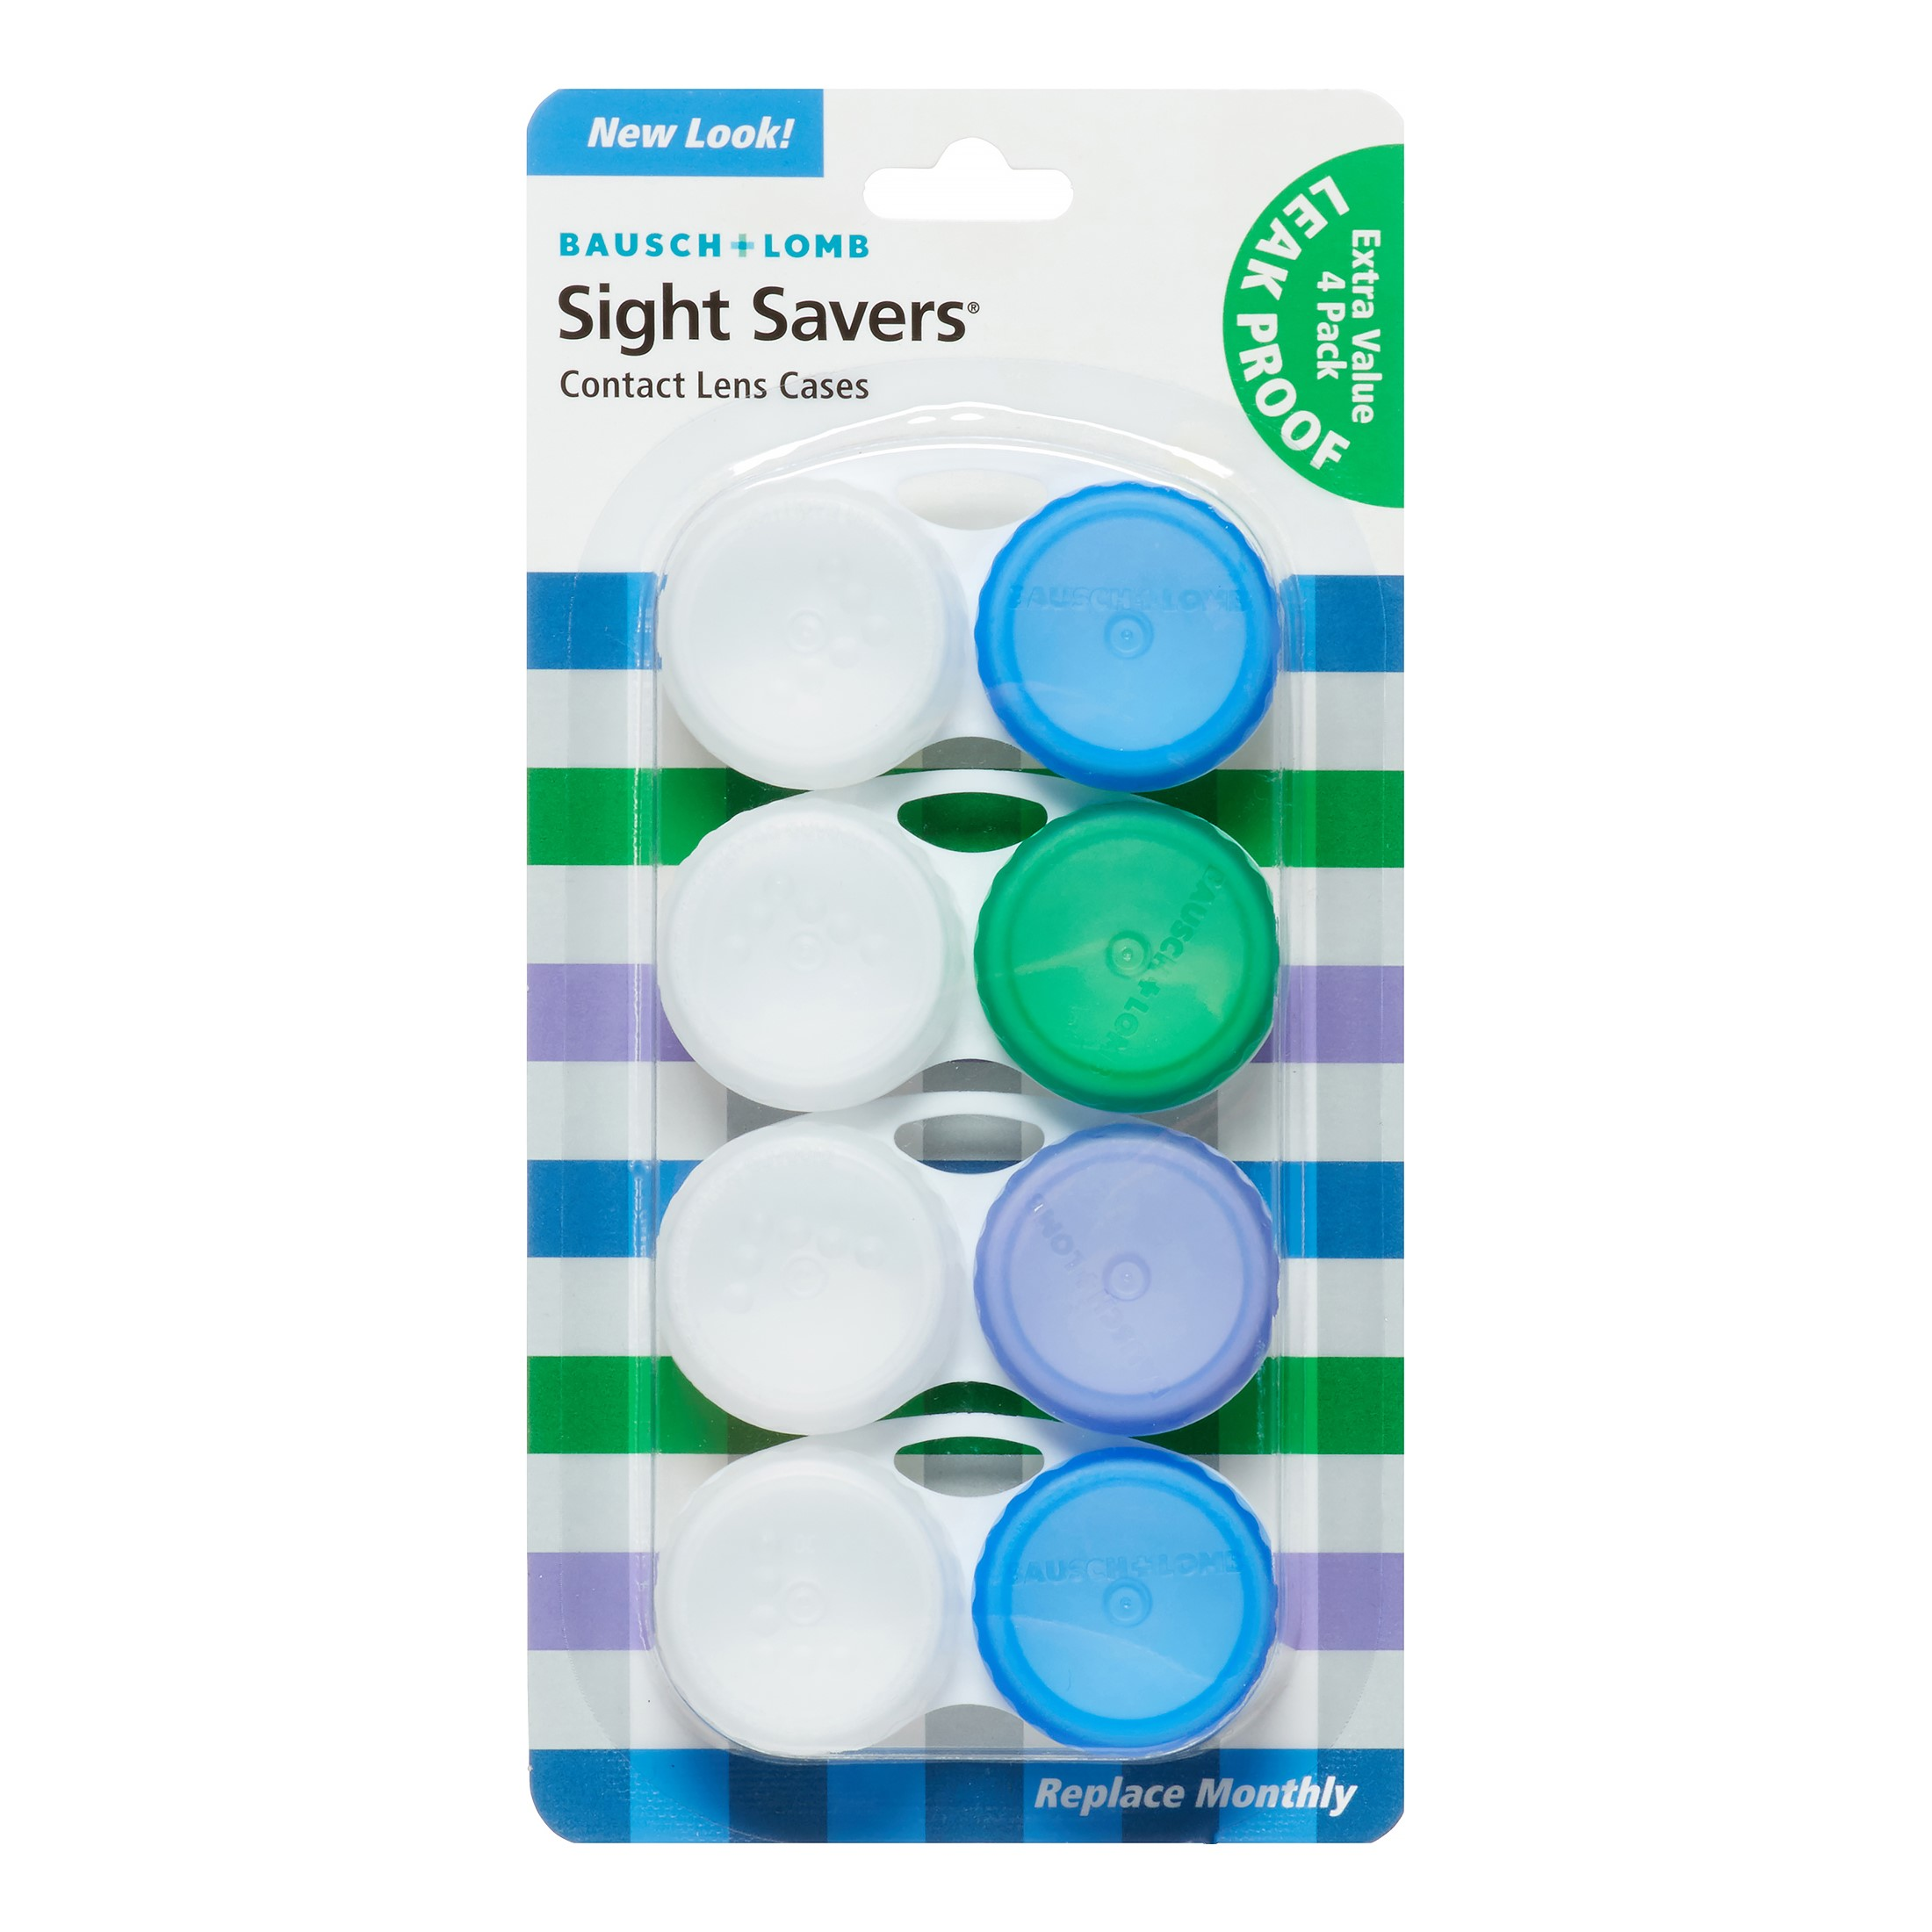 Bausch And Lomb Lens Cases, Blue, 4 Ct - Walmart.com at Walmart - Vision Center in Connersville, IN | Tuggl